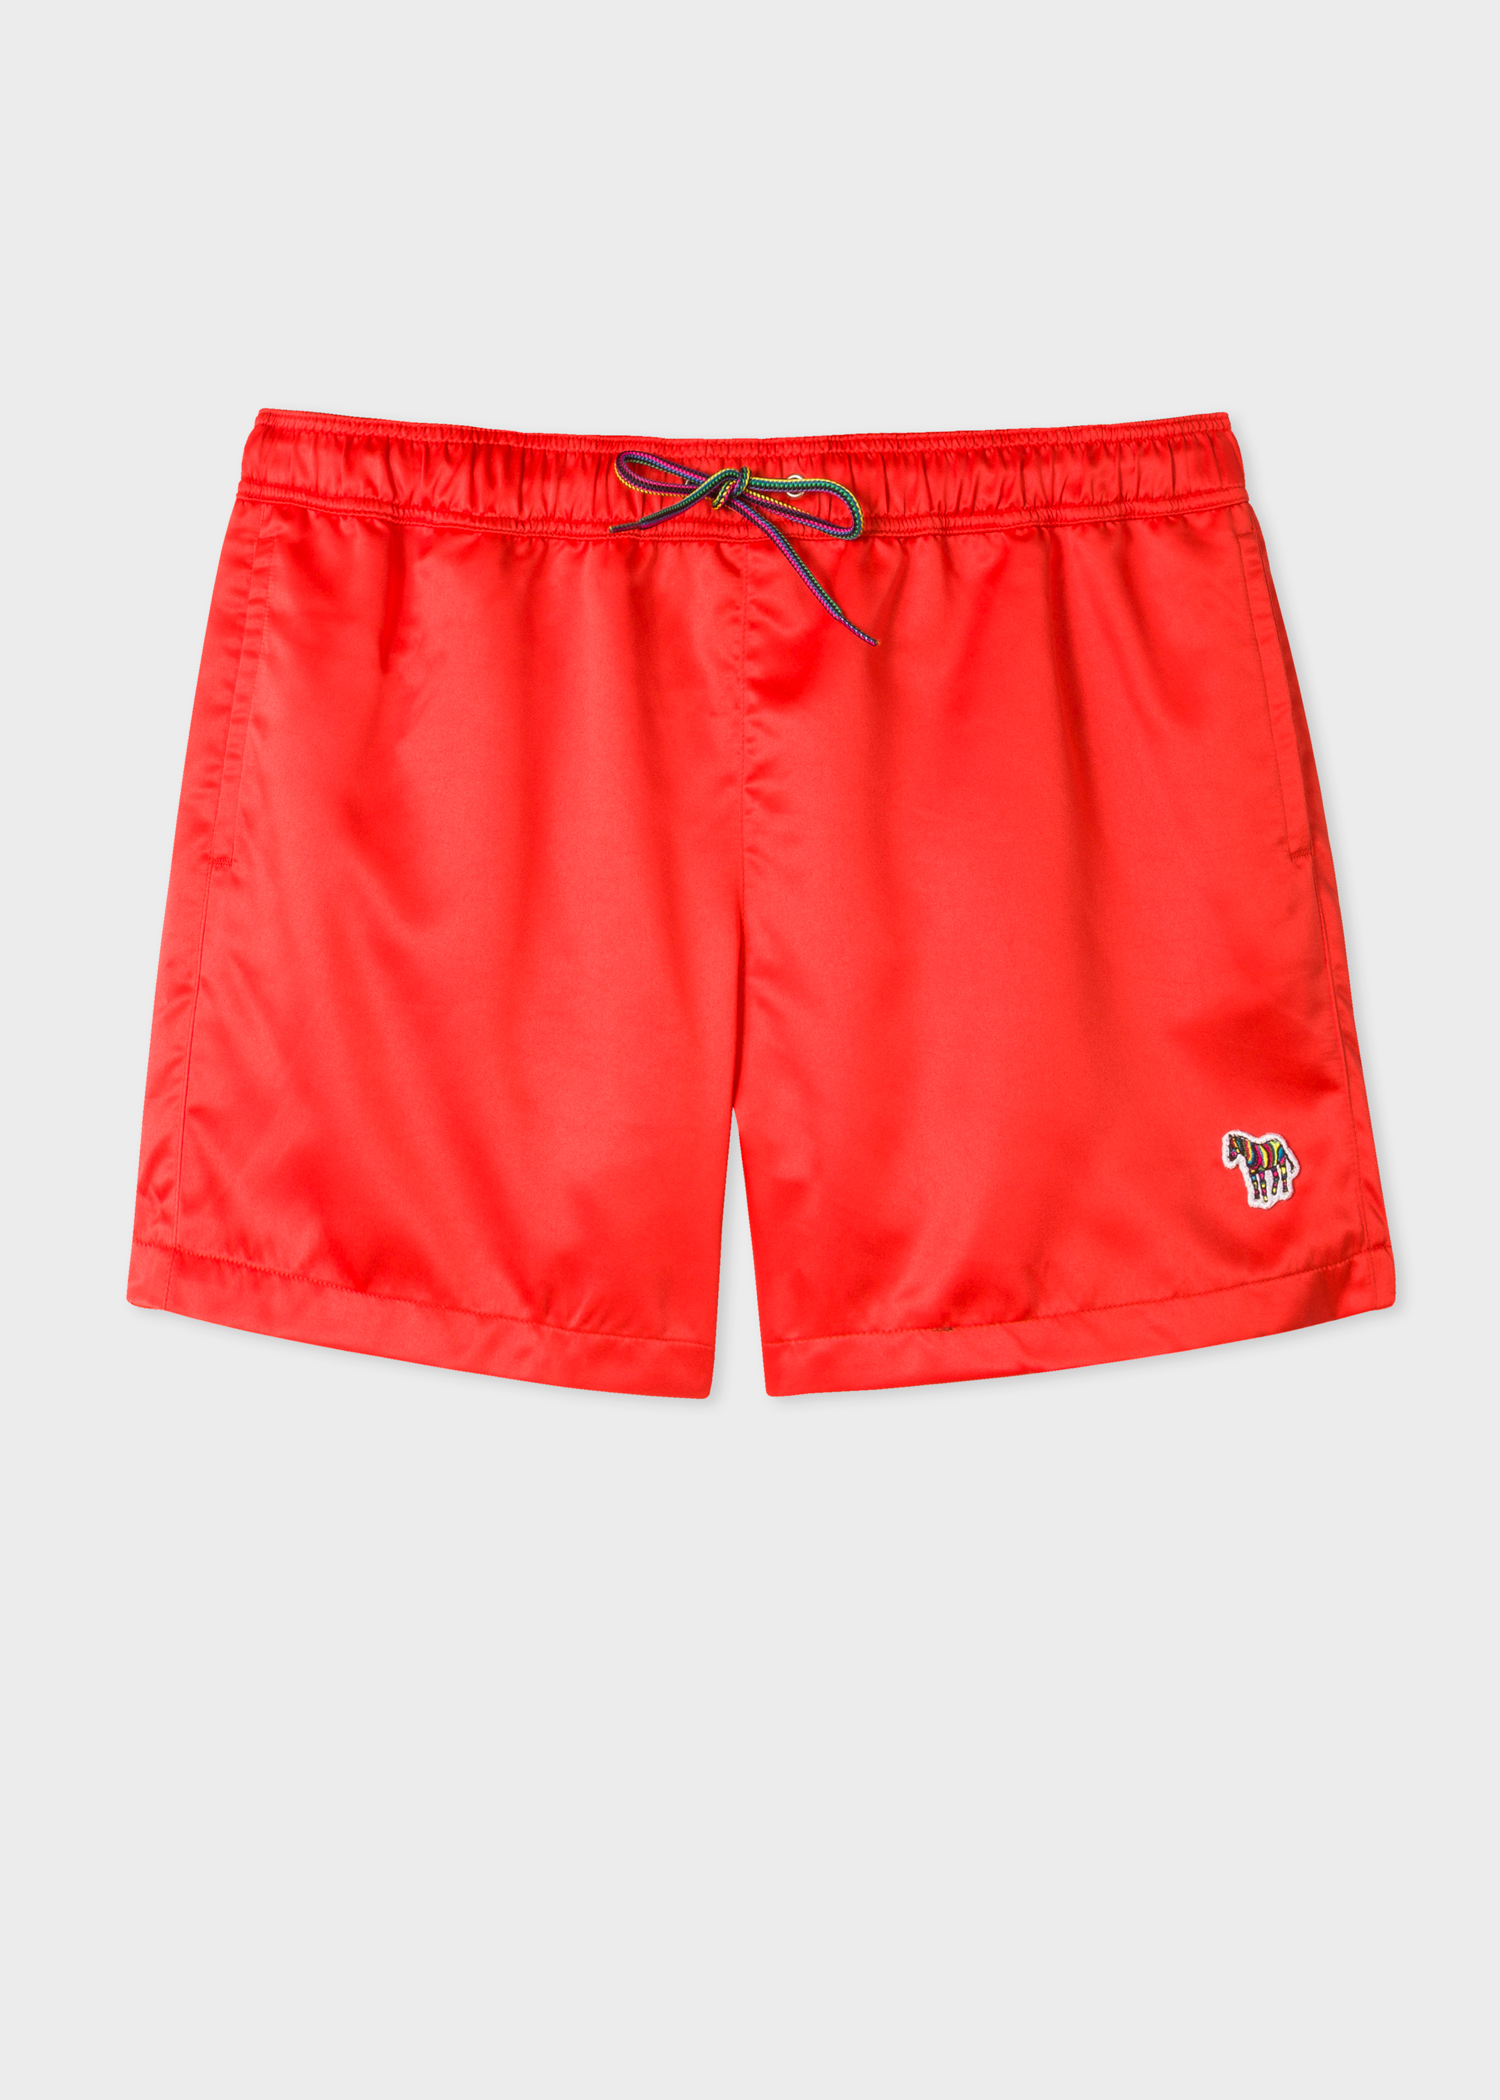 Men S Red Zebra Logo Swim Shorts Paul Smith